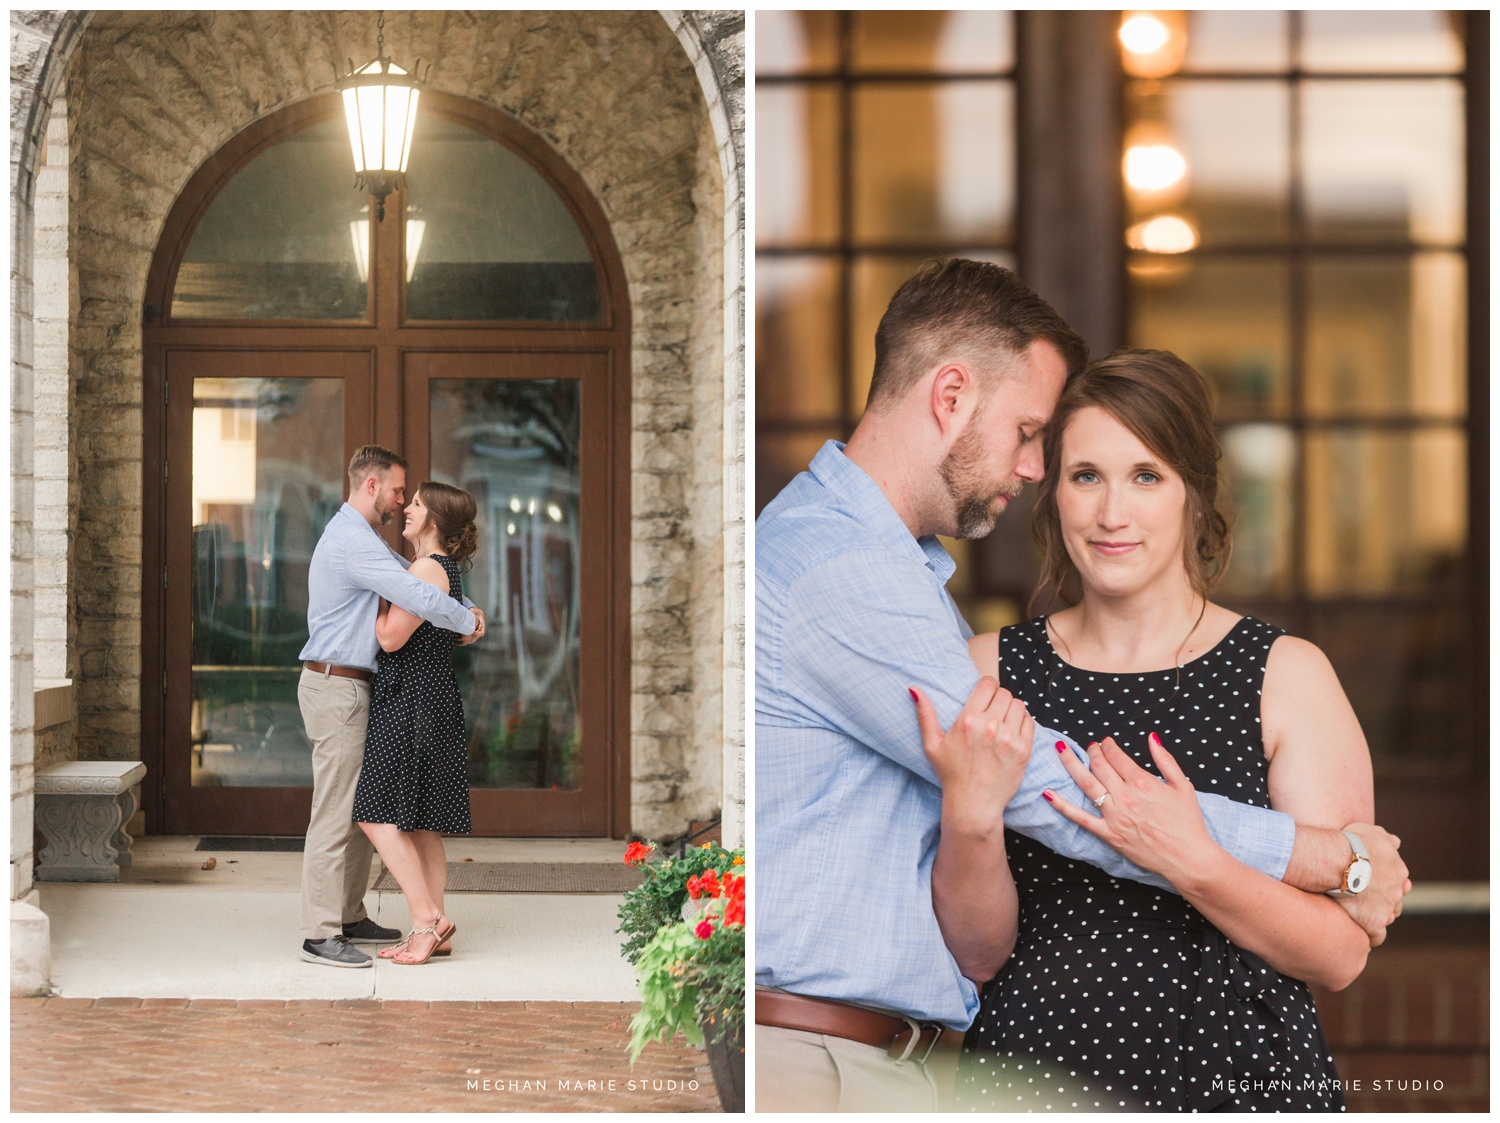 downtown-troy-urban-vintage-engagement-wedding-photography-hayner-cultural-center-meghan-marie-studio_0168.jpg